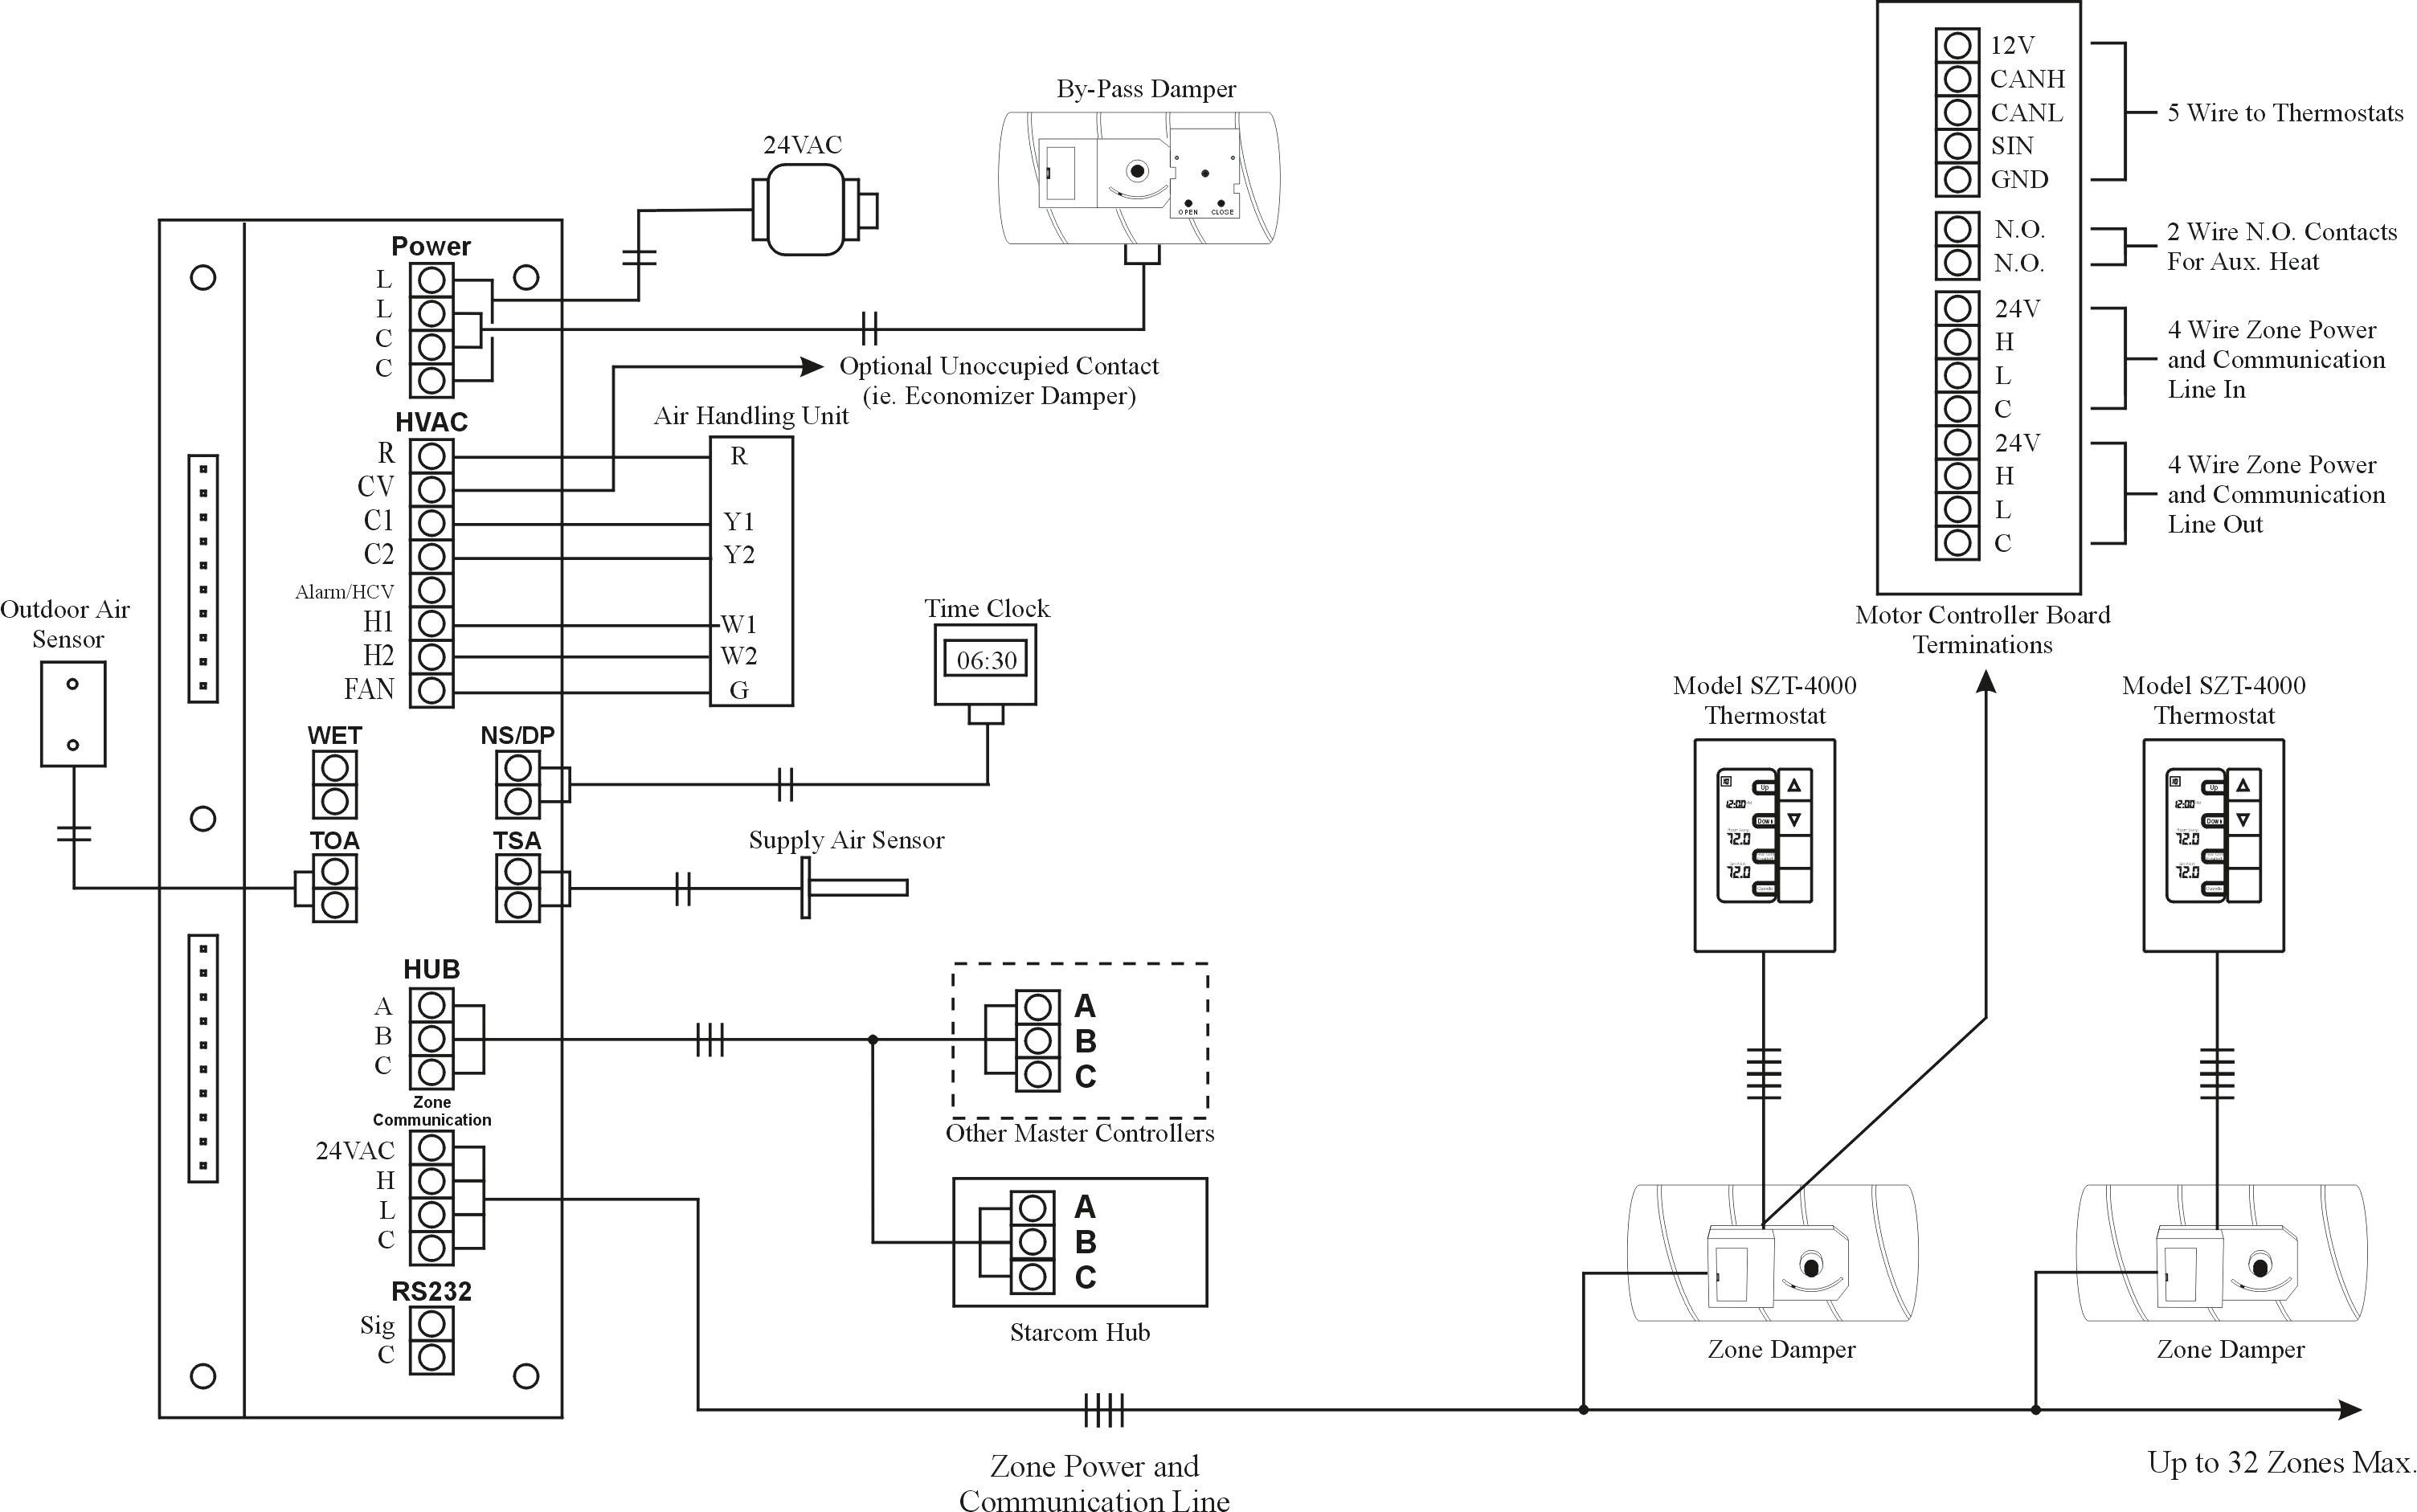 wiring diagram for noma thermostat